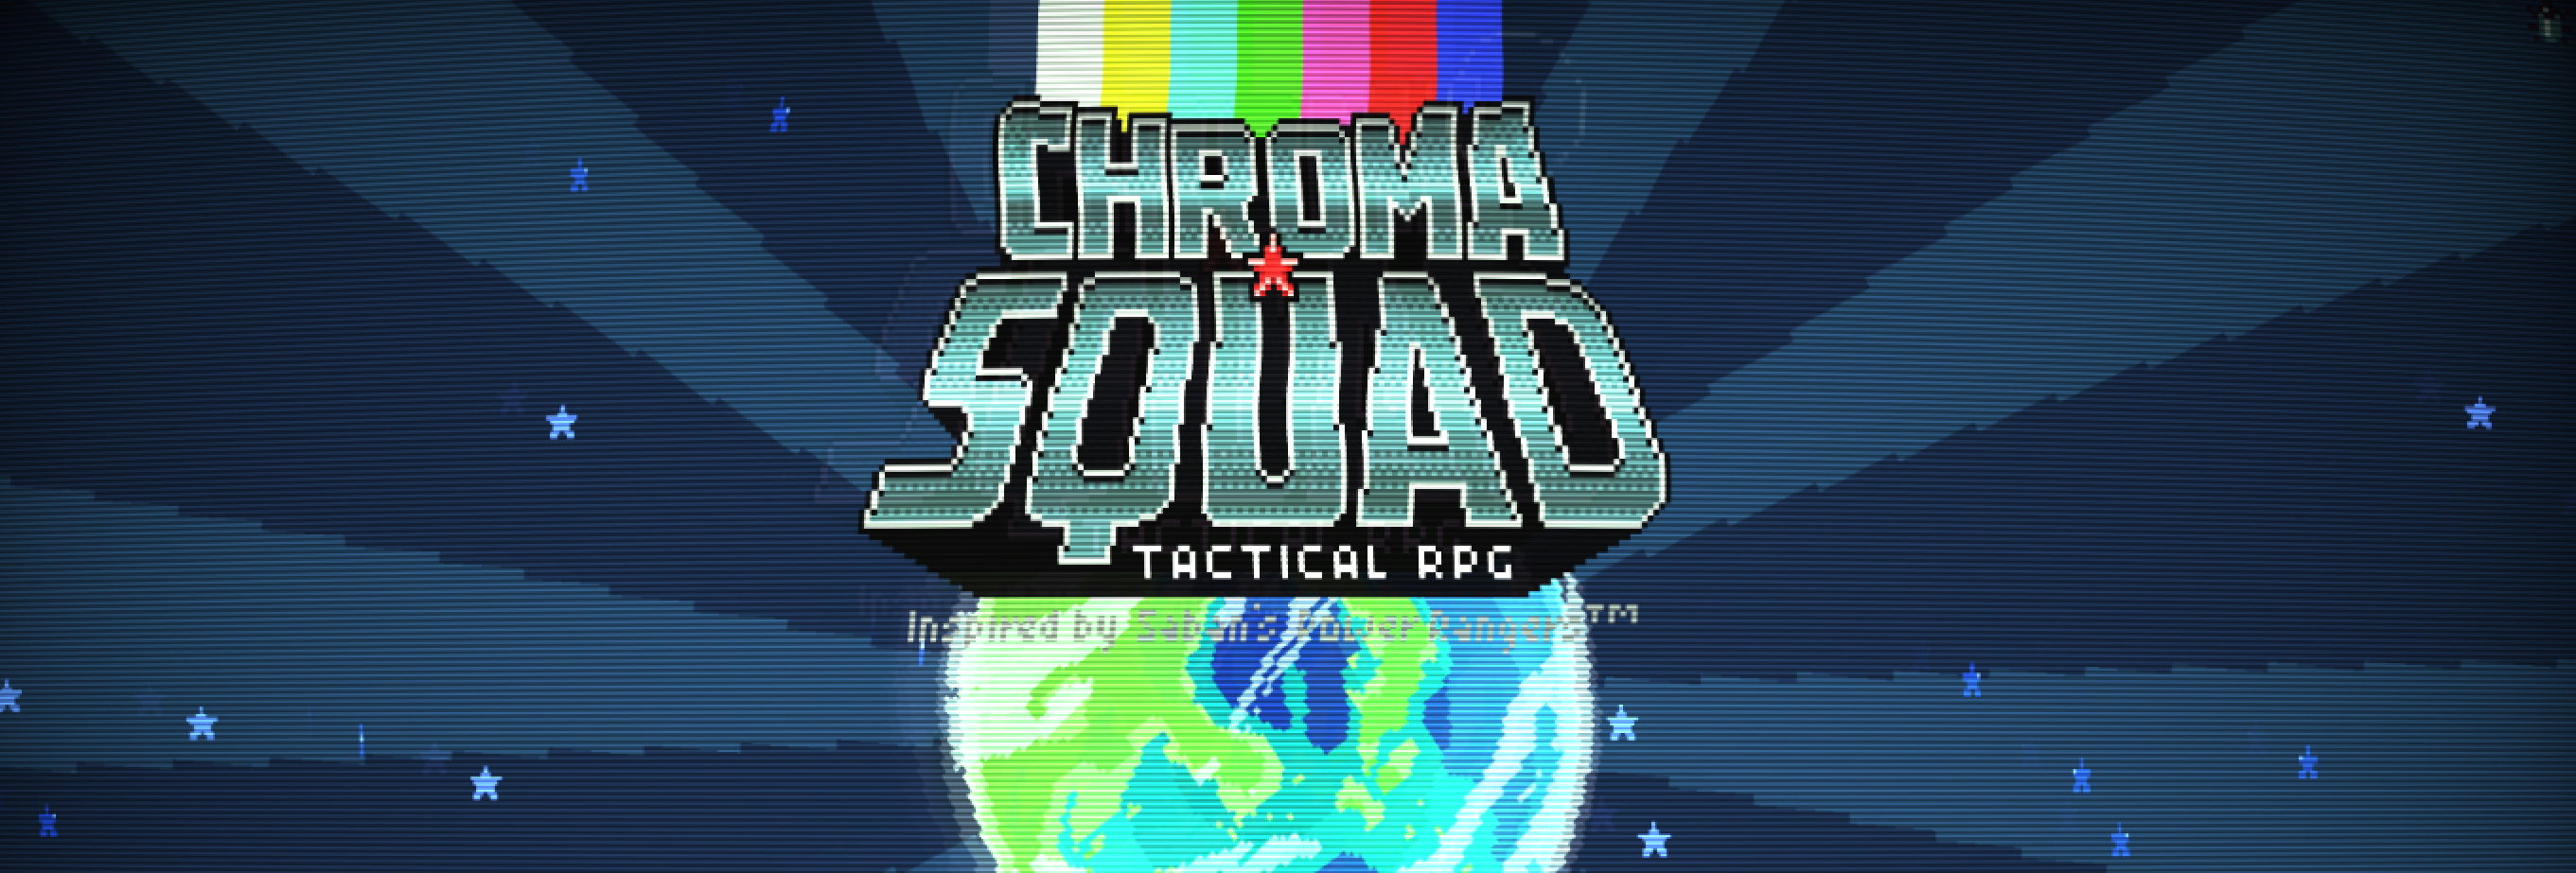 Chroma Squad, a must for Sentai fans